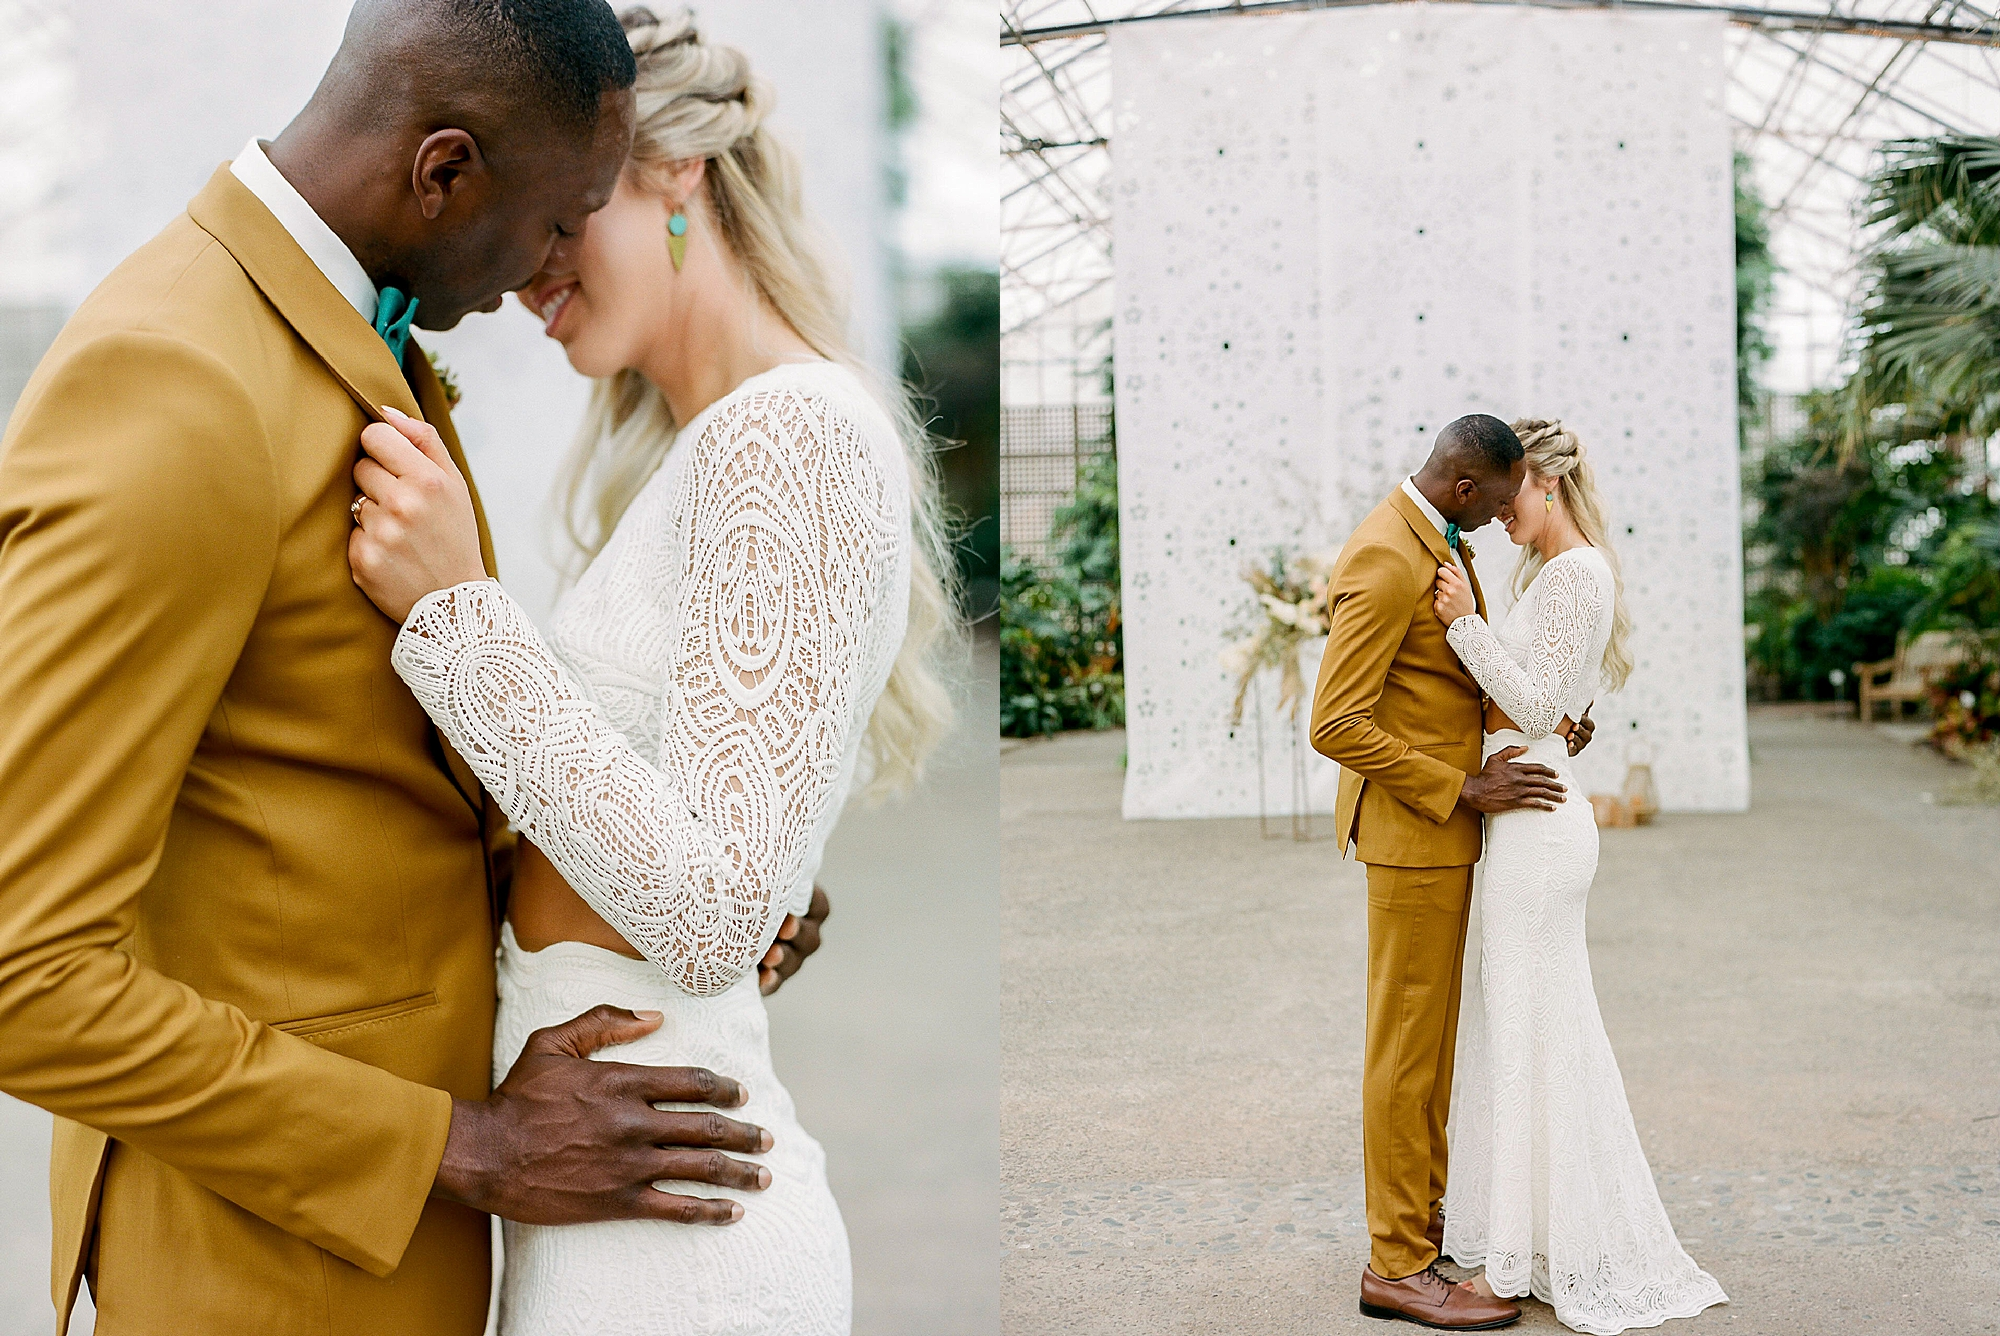 Colorful and Vibrant Wedding Photography at Fairmount Horticultural Center by Magdalena Studios 0031